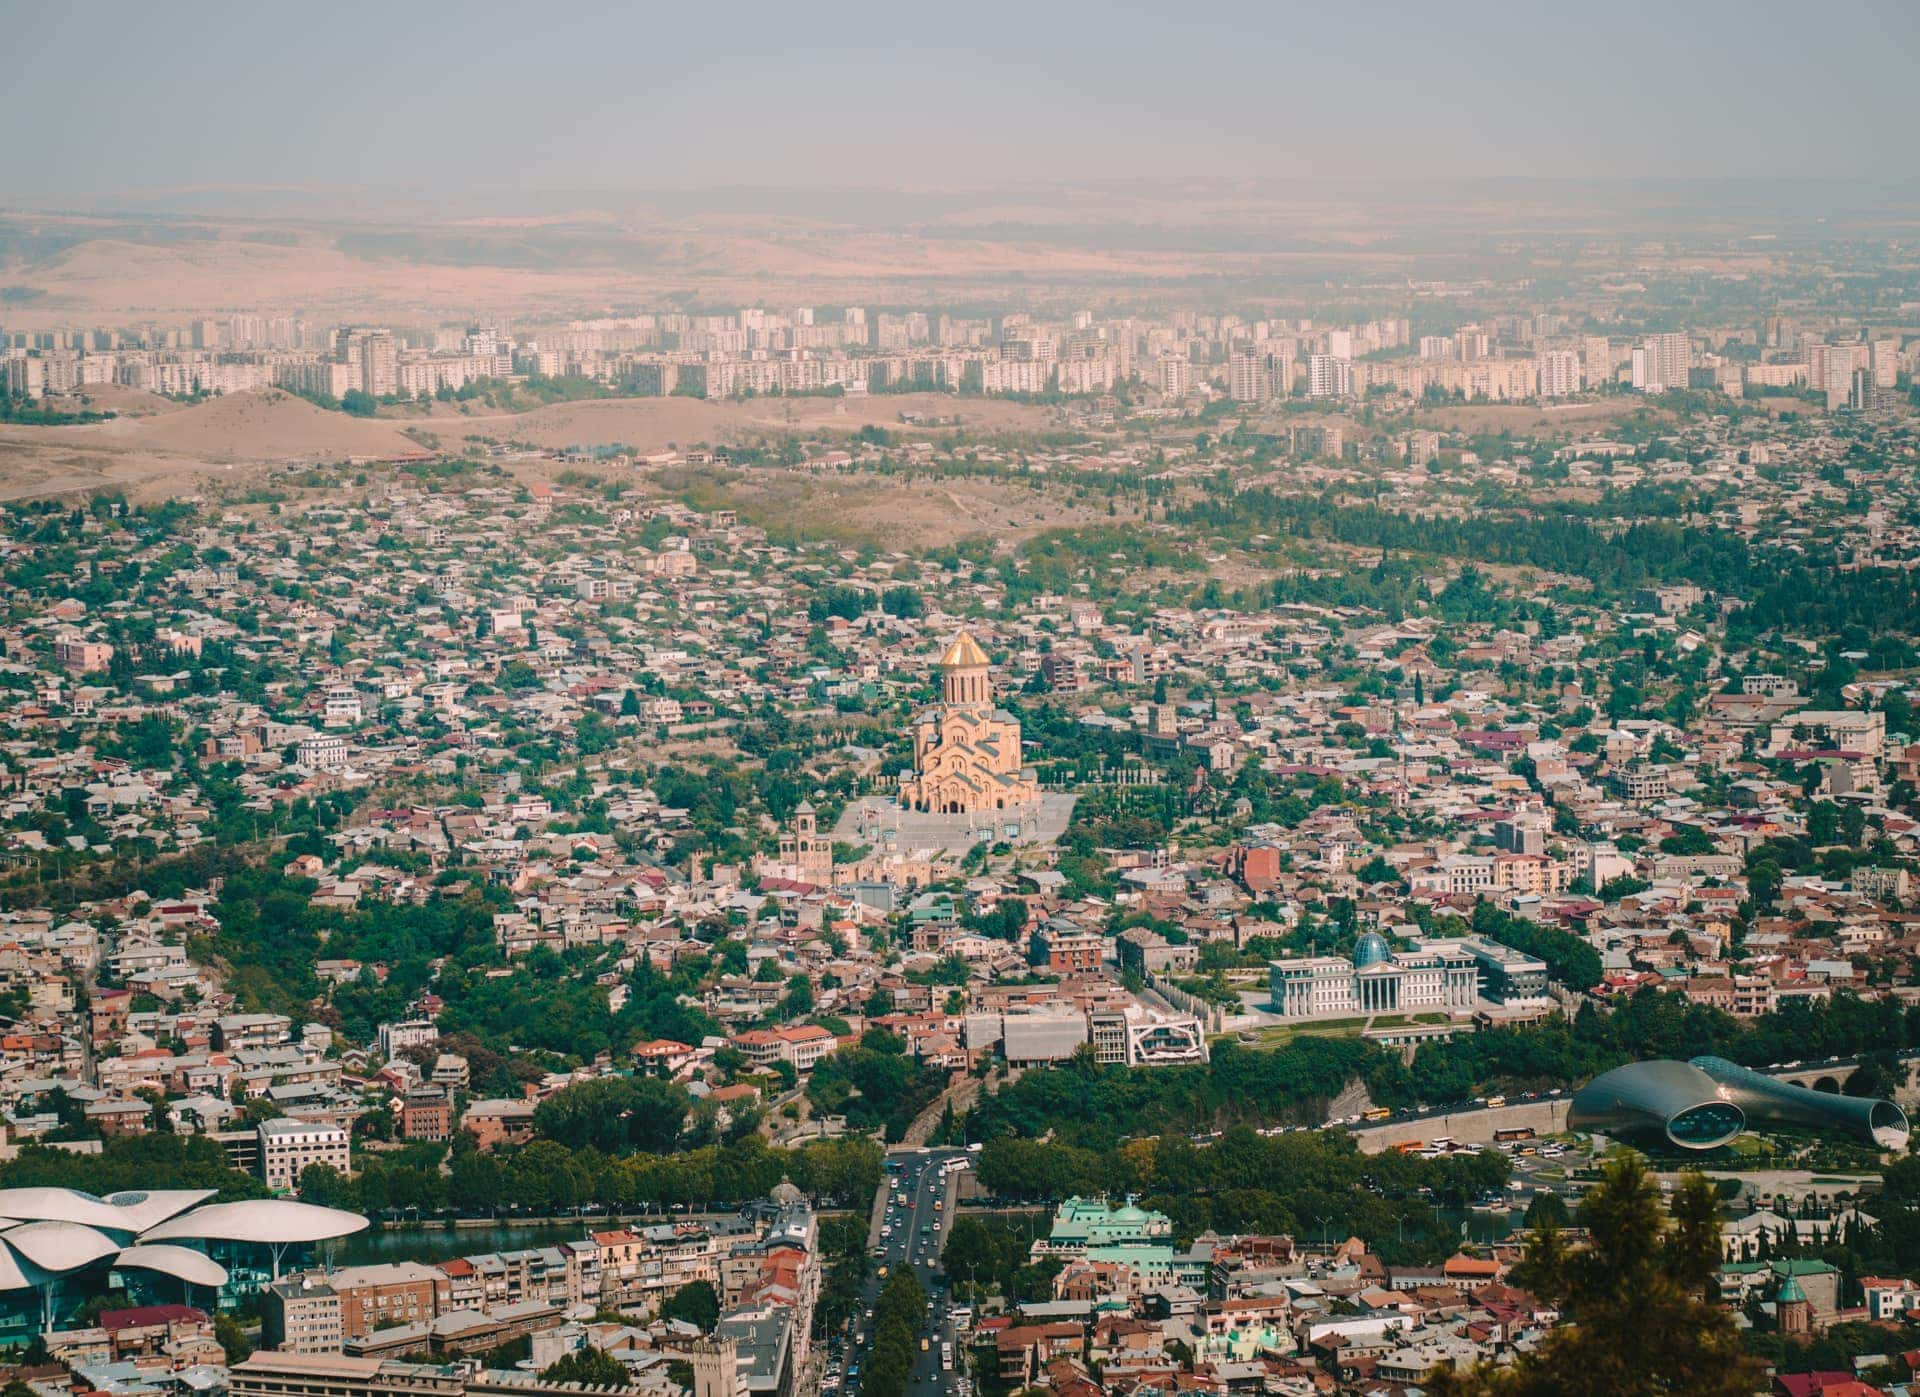 Tbilisi best viewpoint Mtatsminda